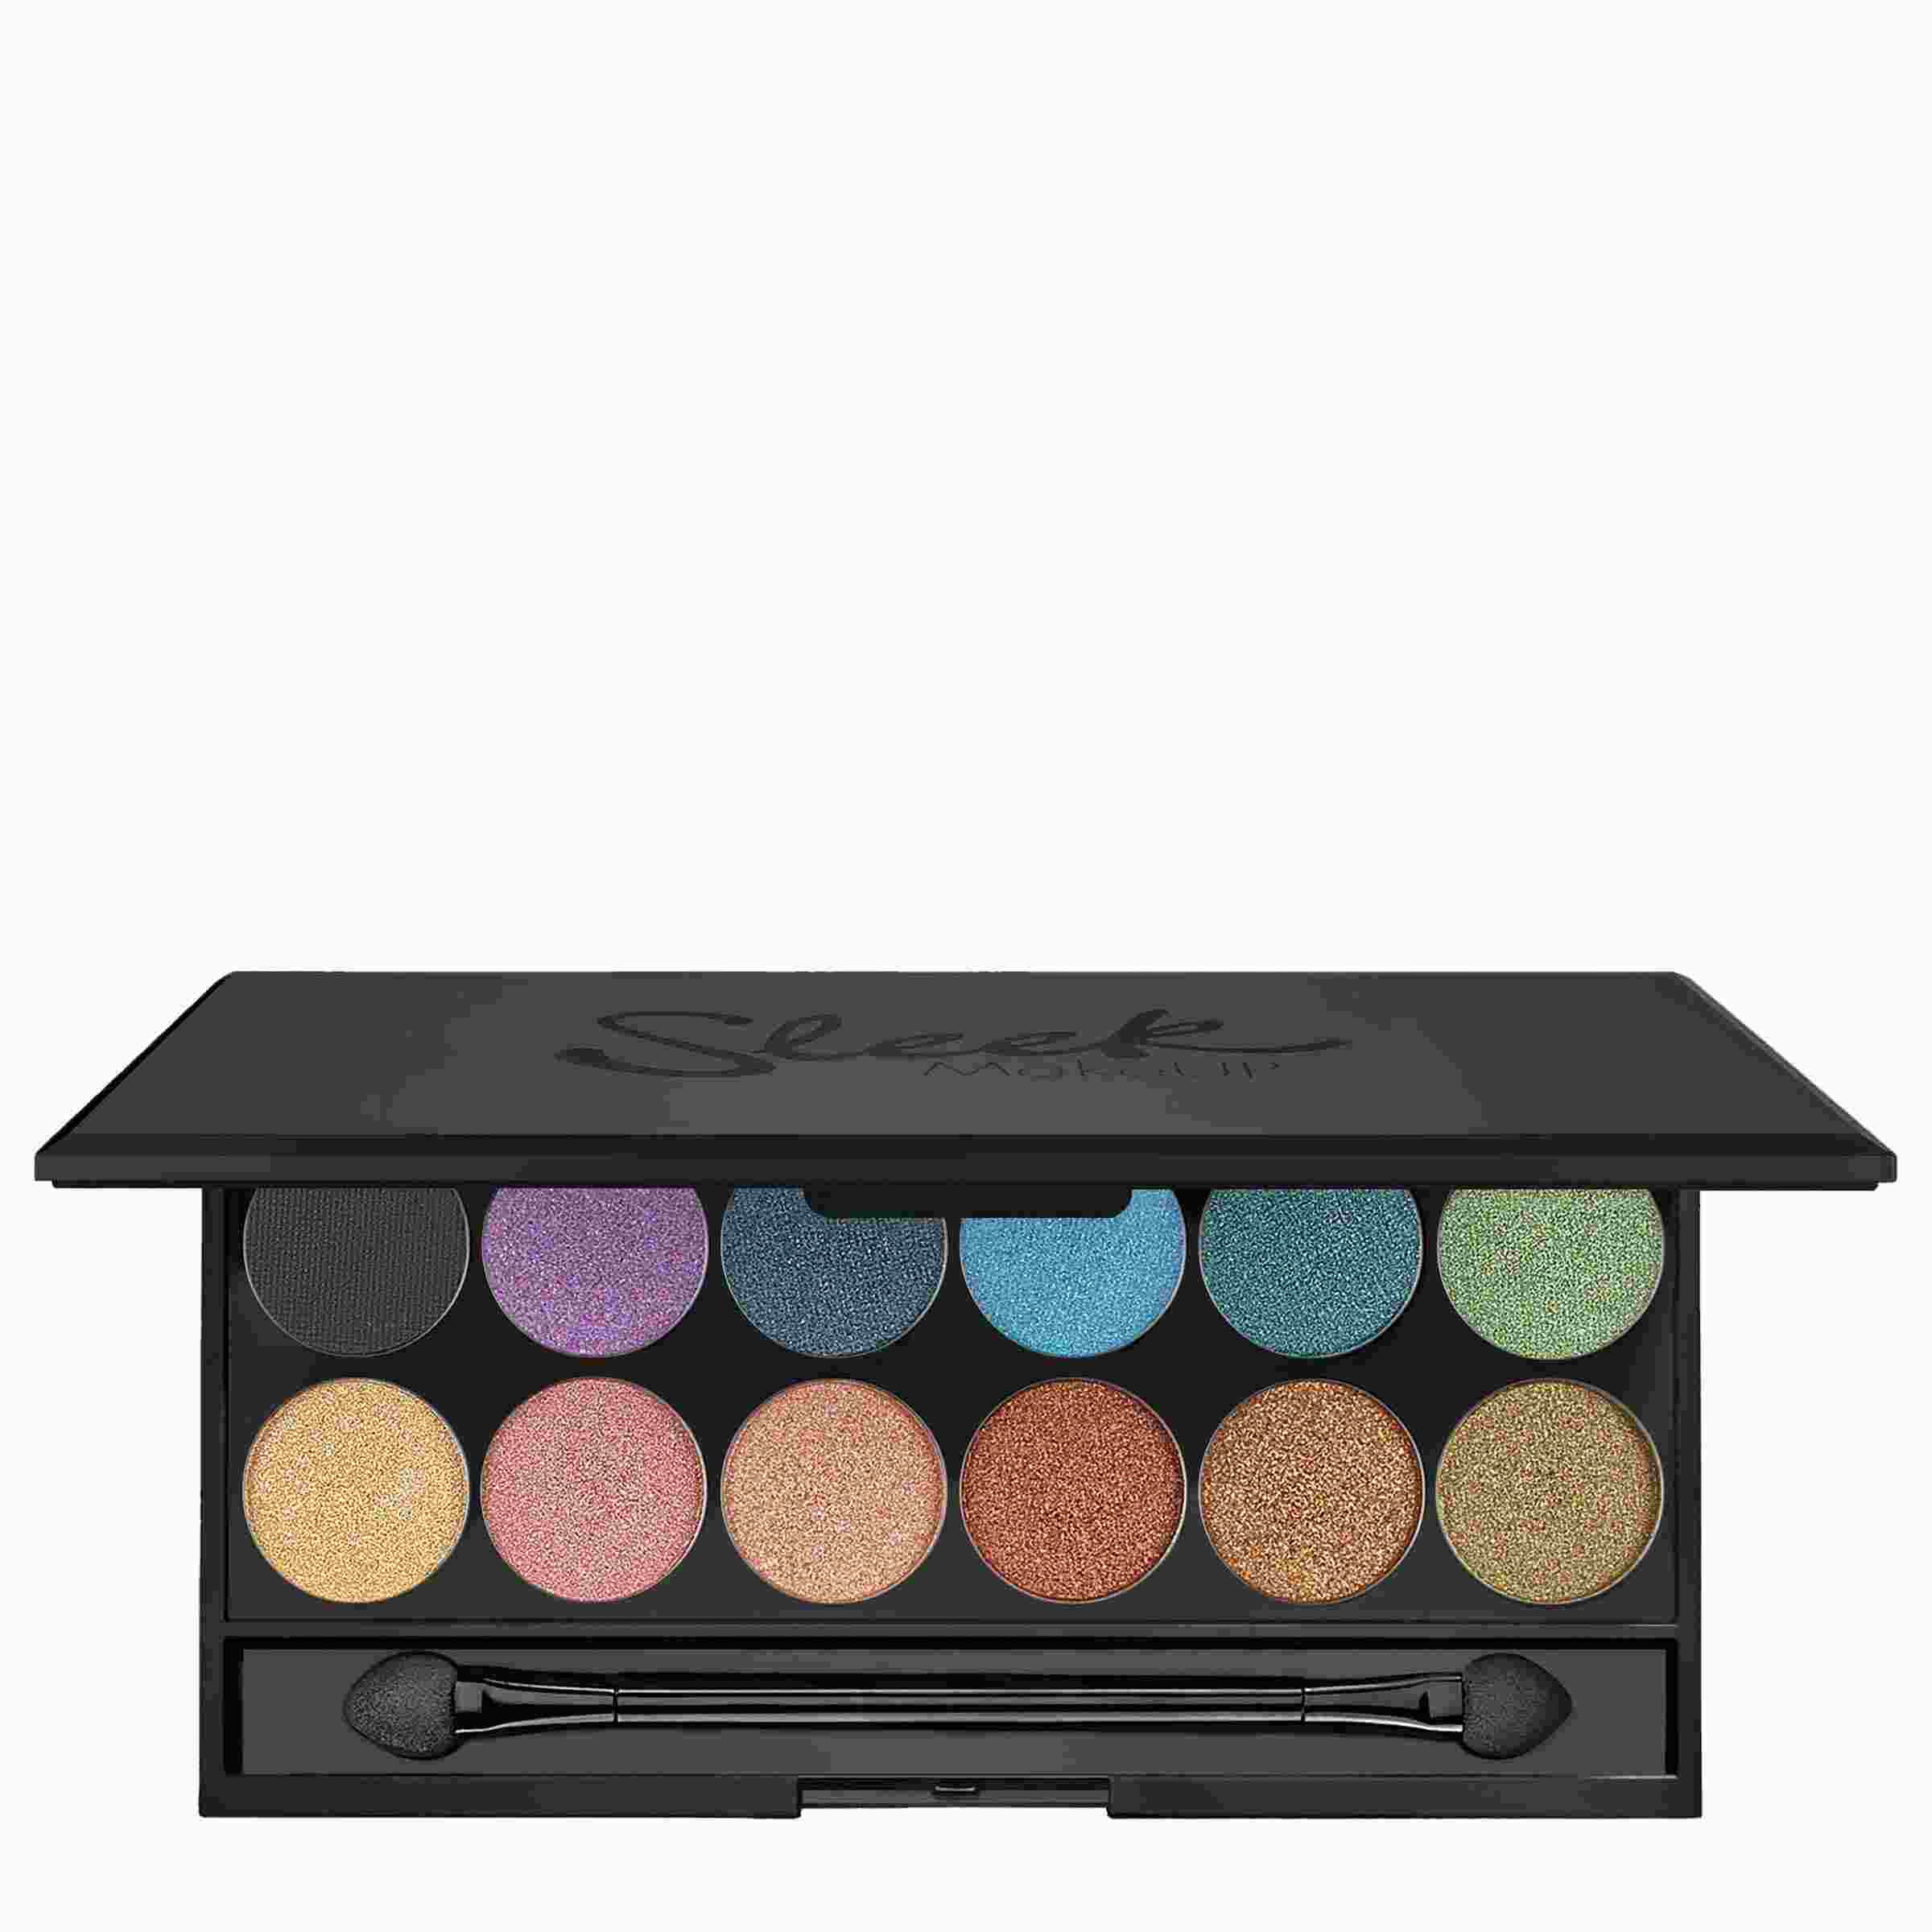 I Divine Eyeshadow Palette Original Sleek Makeup